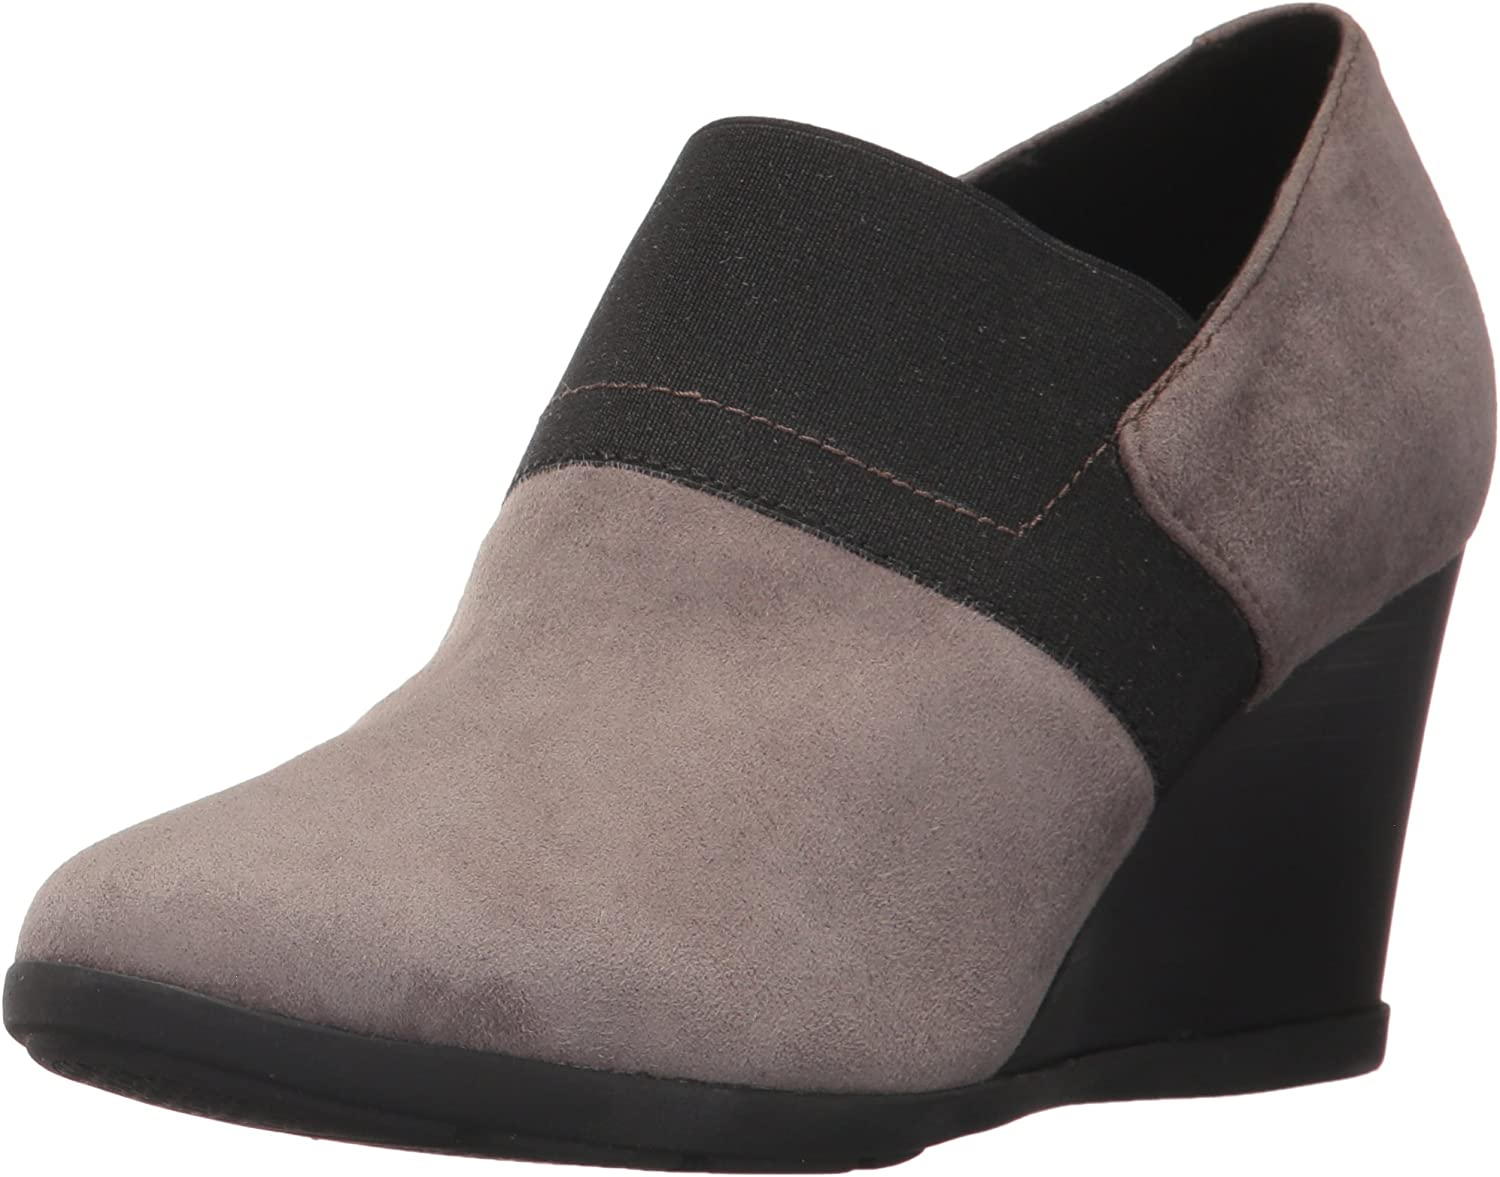 Geox Women's Inspiration Sales results Max 90% OFF No. 1 Wedg Pump Dress